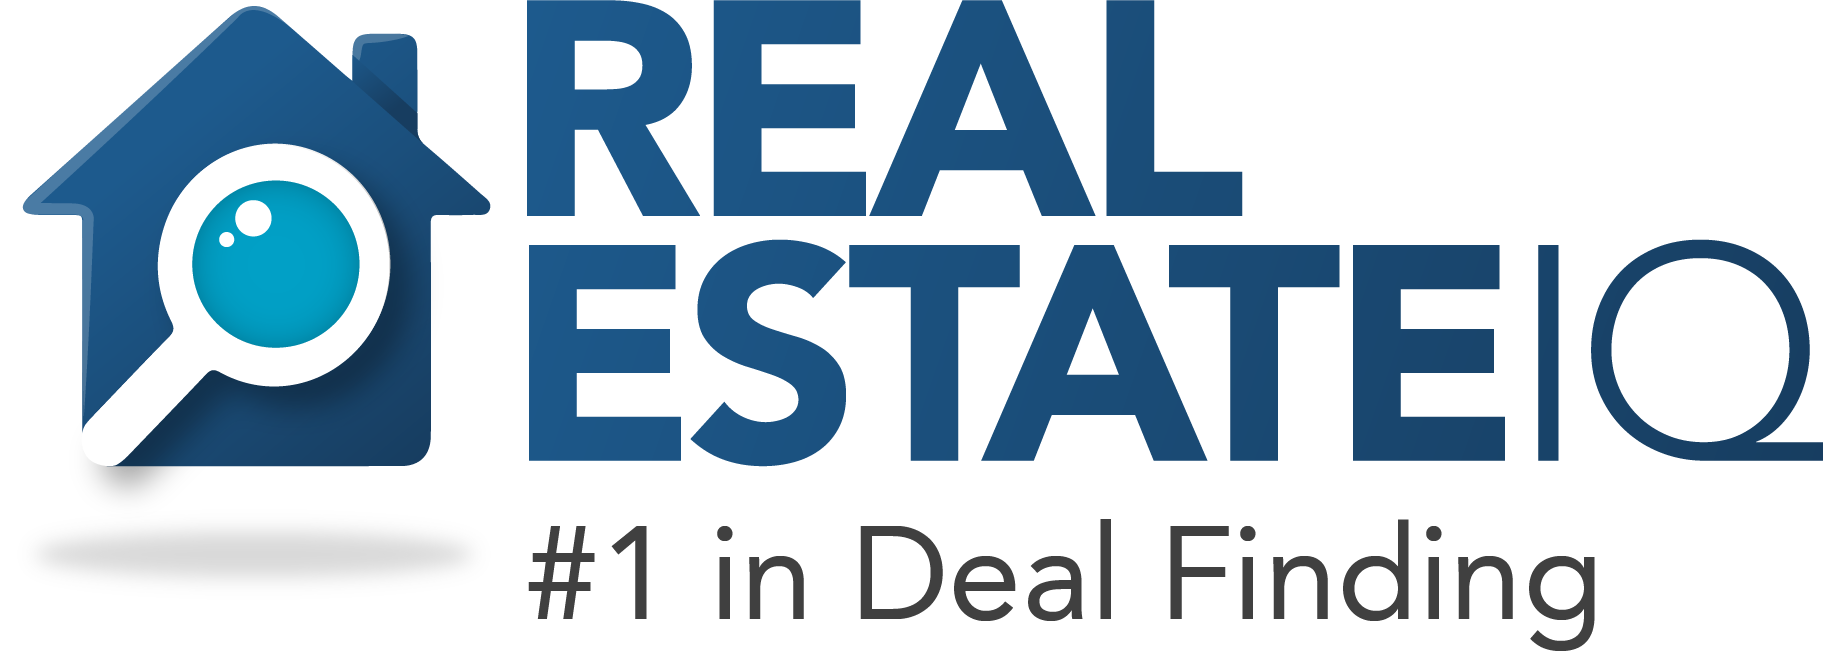 Real Estate IQ - #1 in Deal Finding